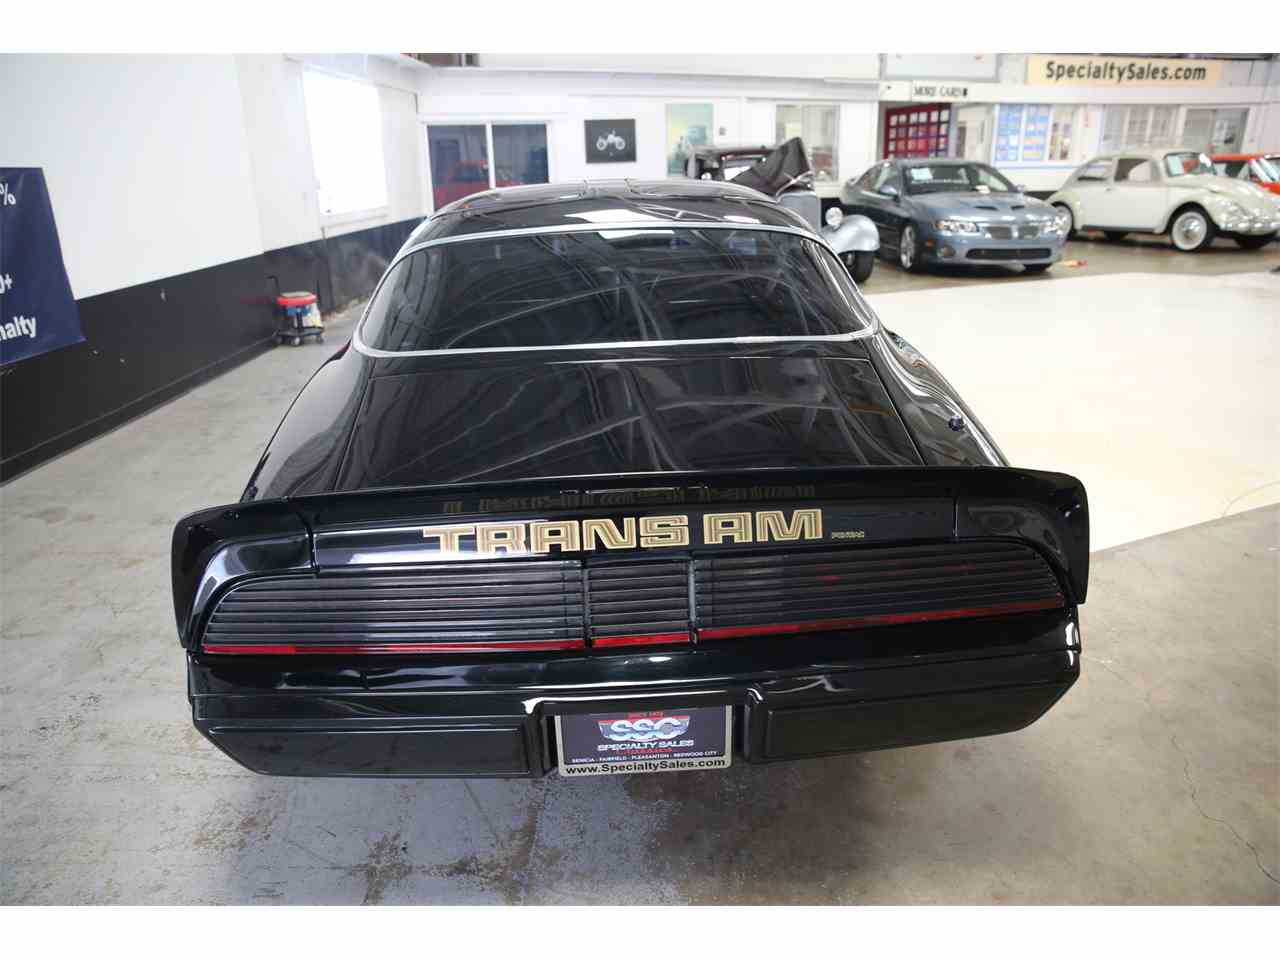 Large Picture of '79 Firebird located in Fairfield California - $34,990.00 - KQ8J